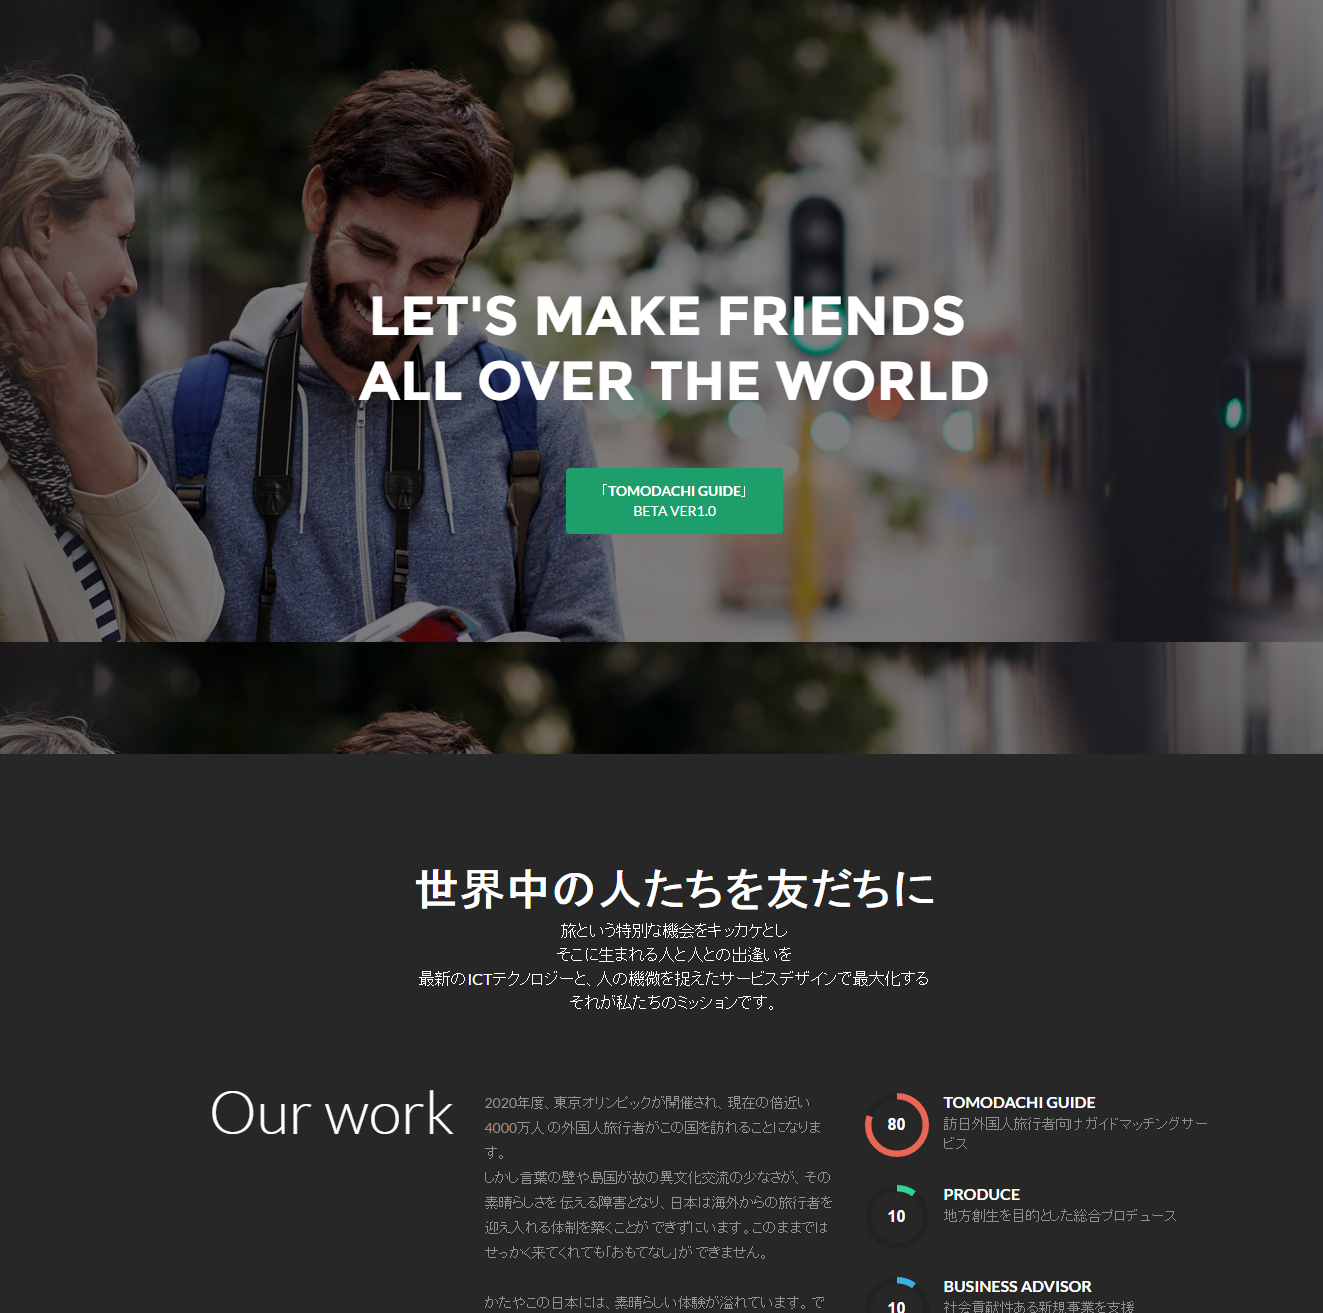 FireShot Capture 43 - Huber. Inc – 世界中の人を友だちに - http___huber.co.jp_